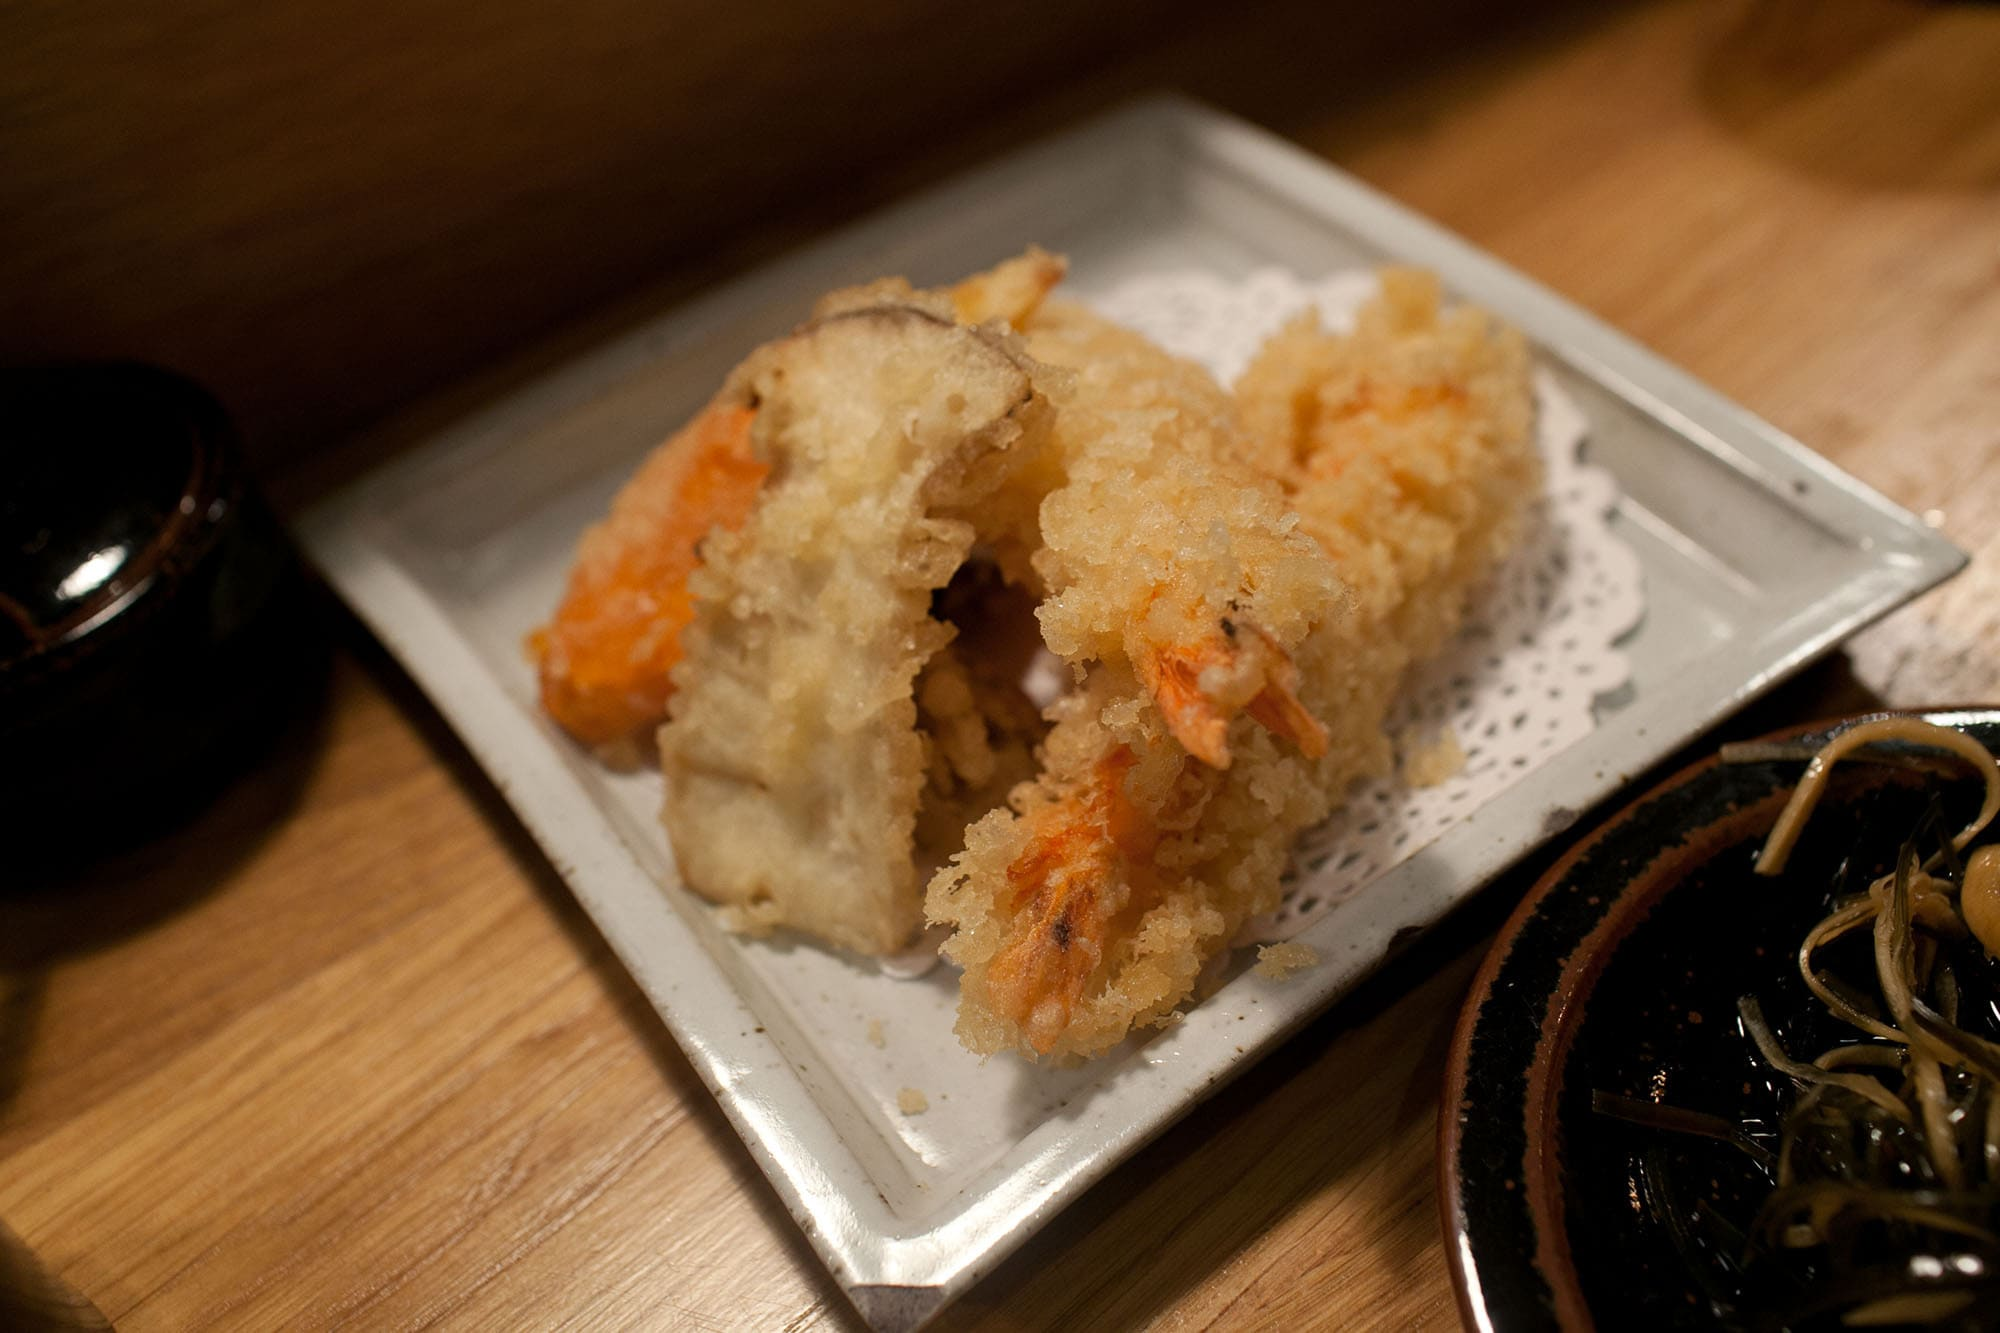 Shrimp and vegetable tempura at Koya Bar in Soho, London, England